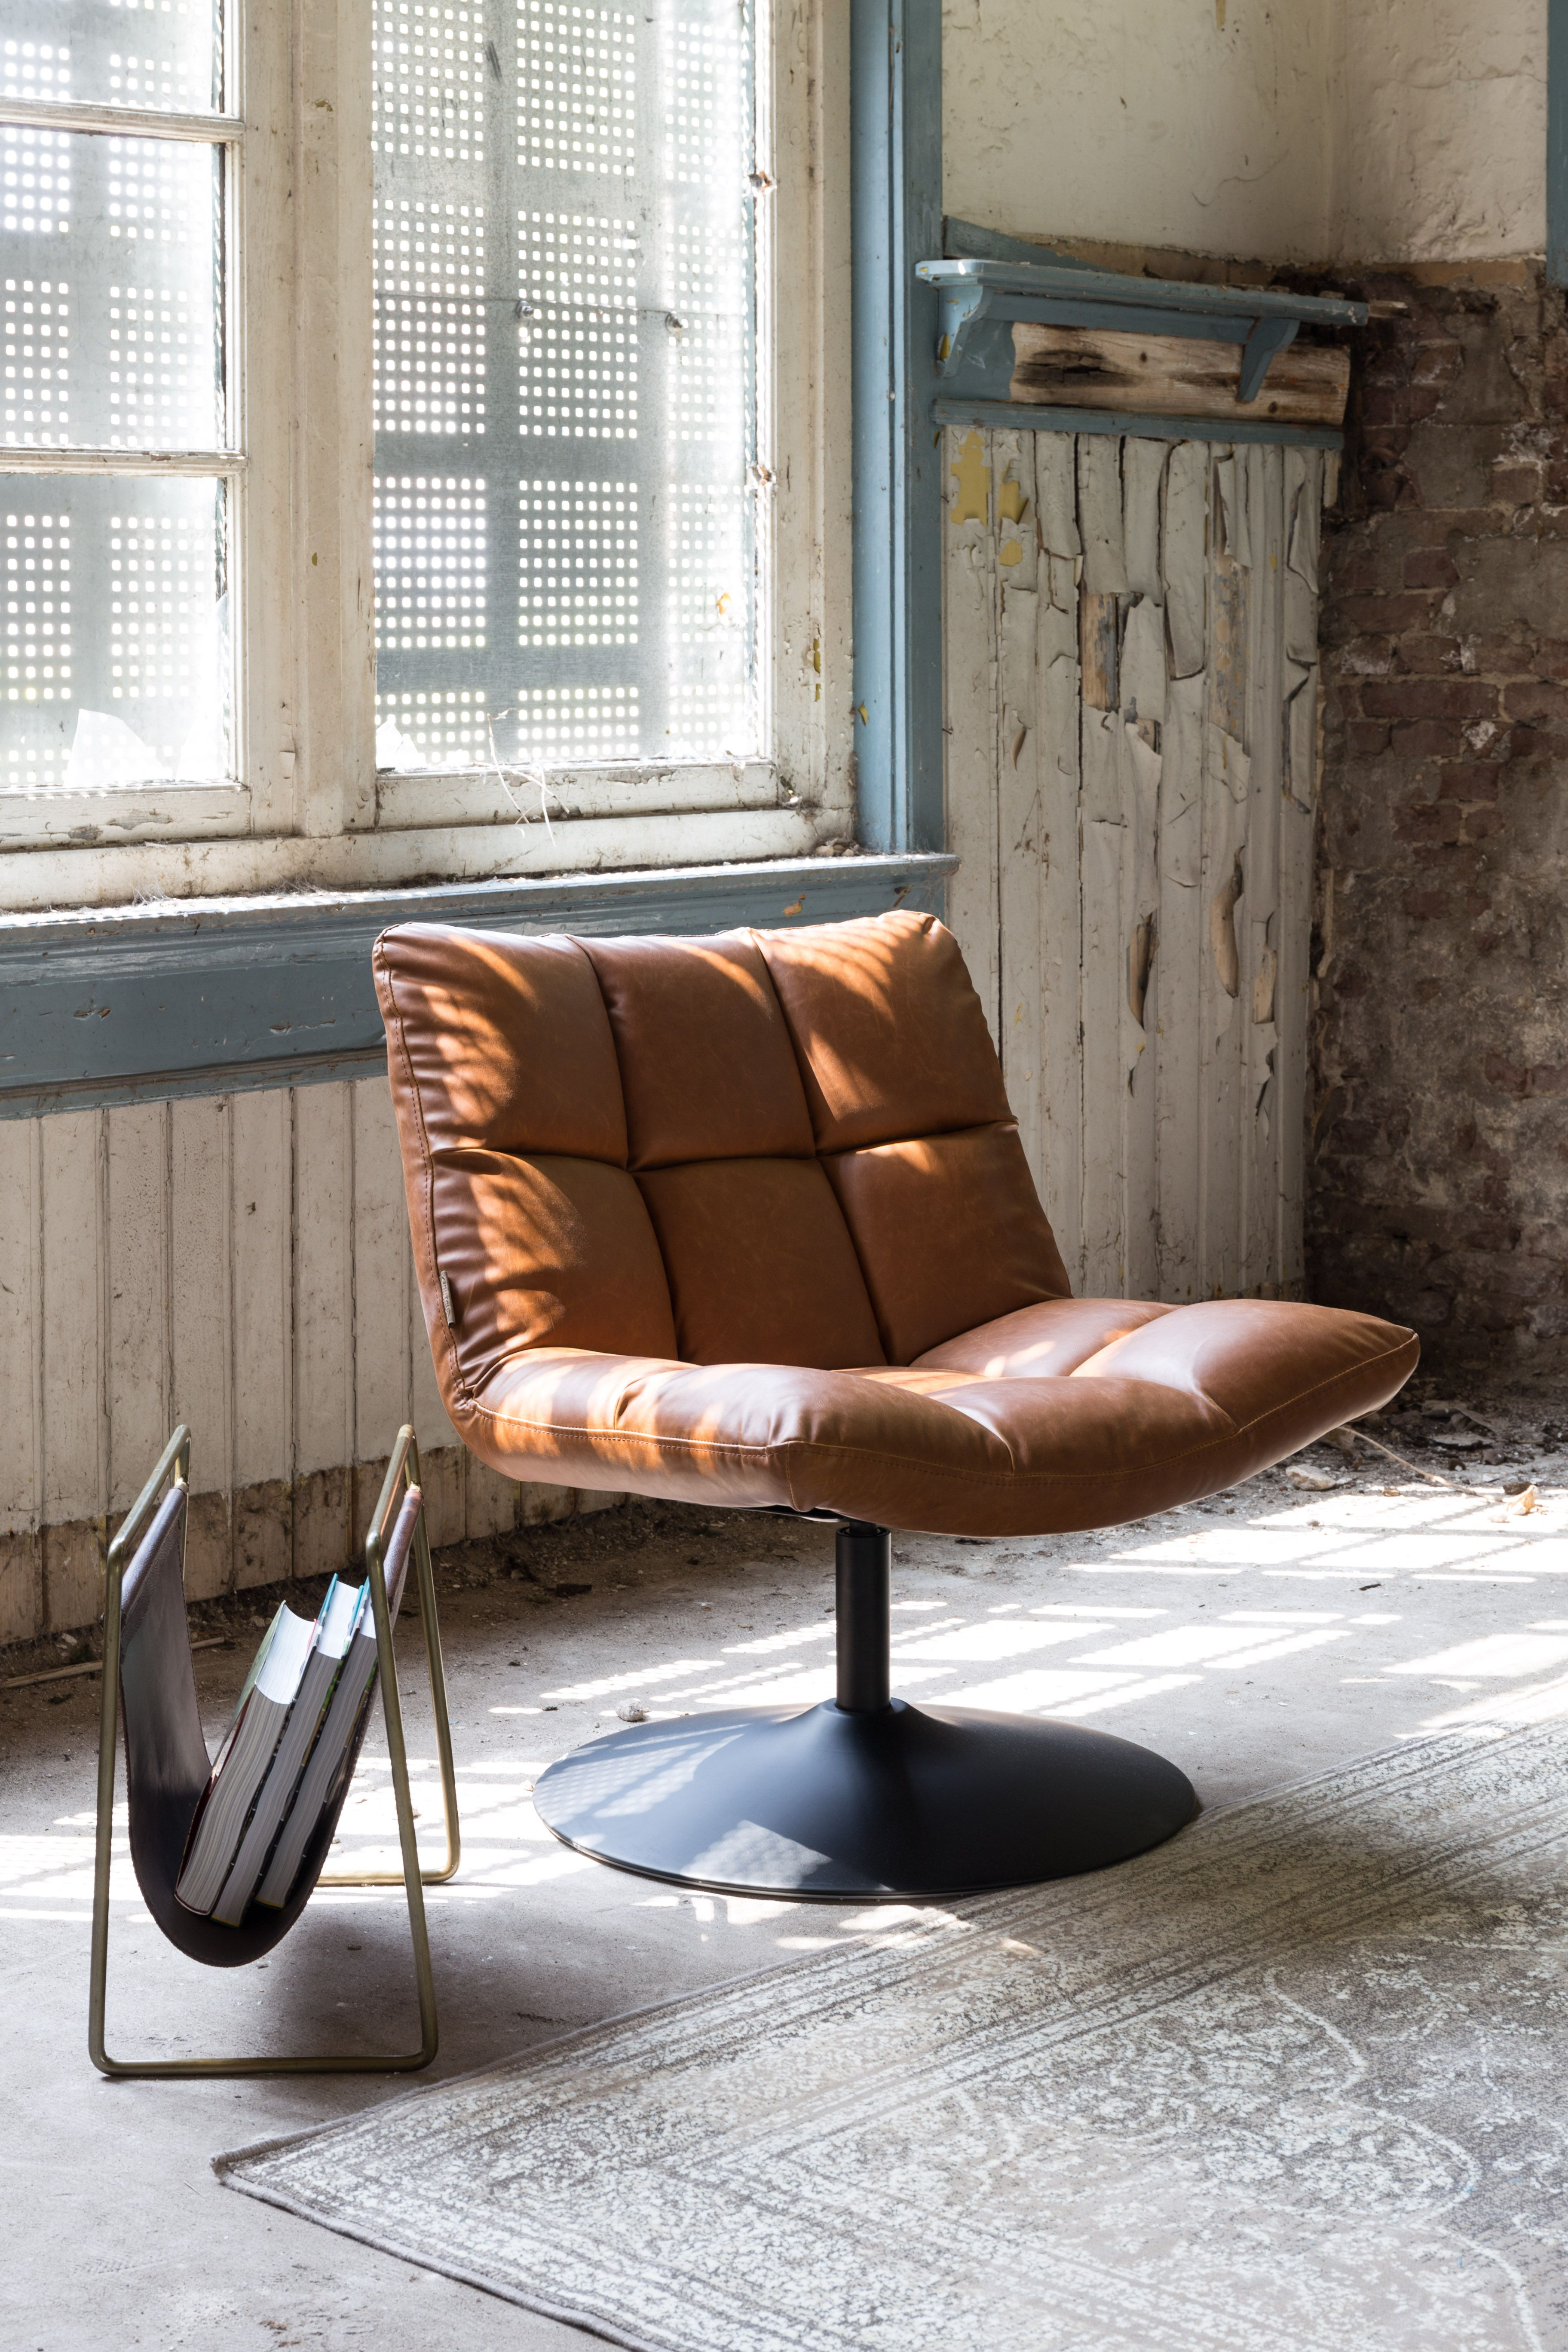 Sessel Industrial Bar Lounge Chair Heerlijkheid Wohnideen Wohnzimmer Sessel